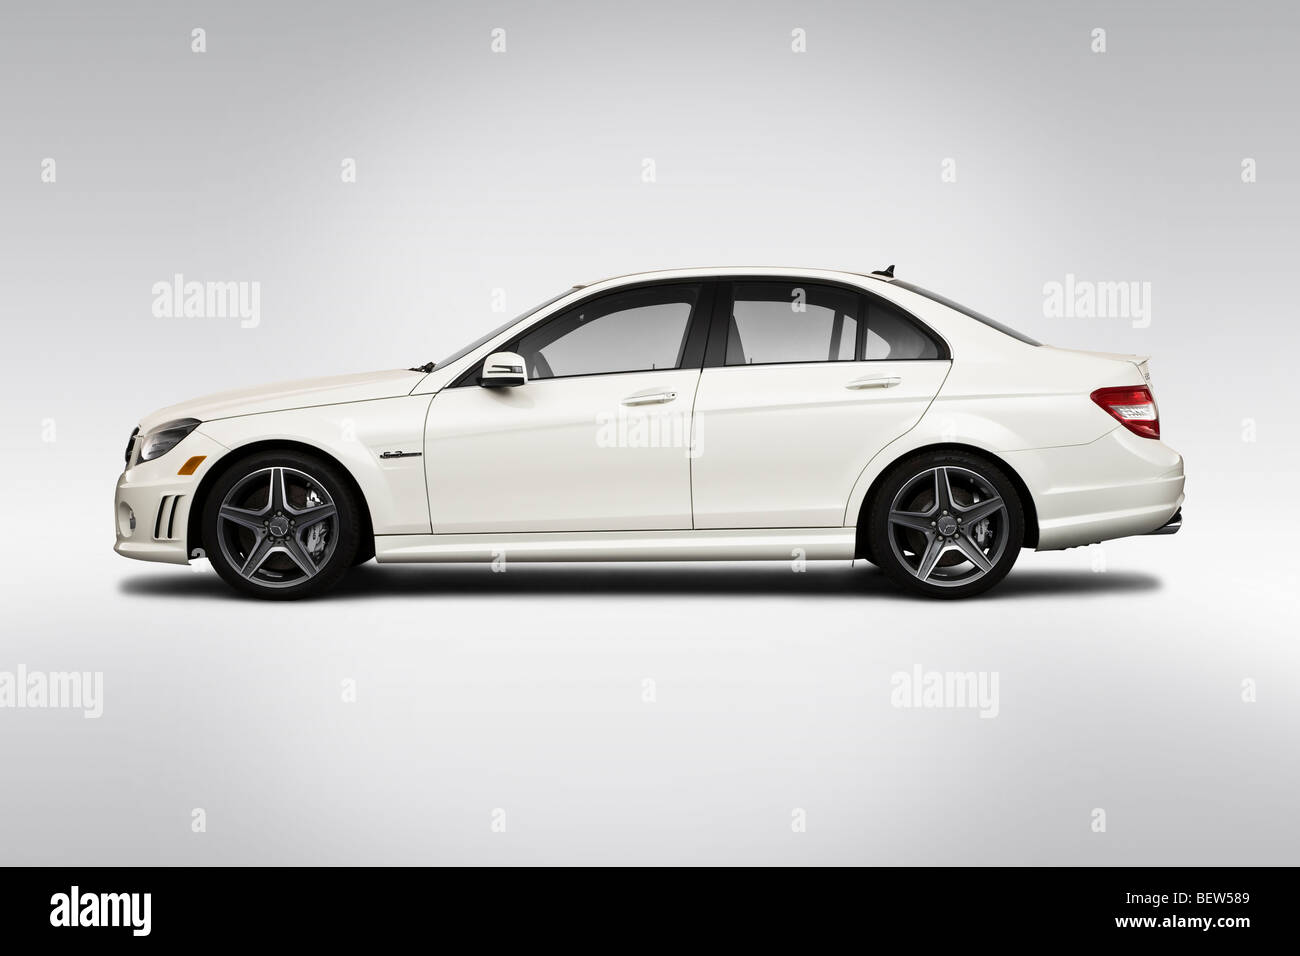 2010 mercedes benz c class c63 amg in white drivers side for Mercedes benz c class white